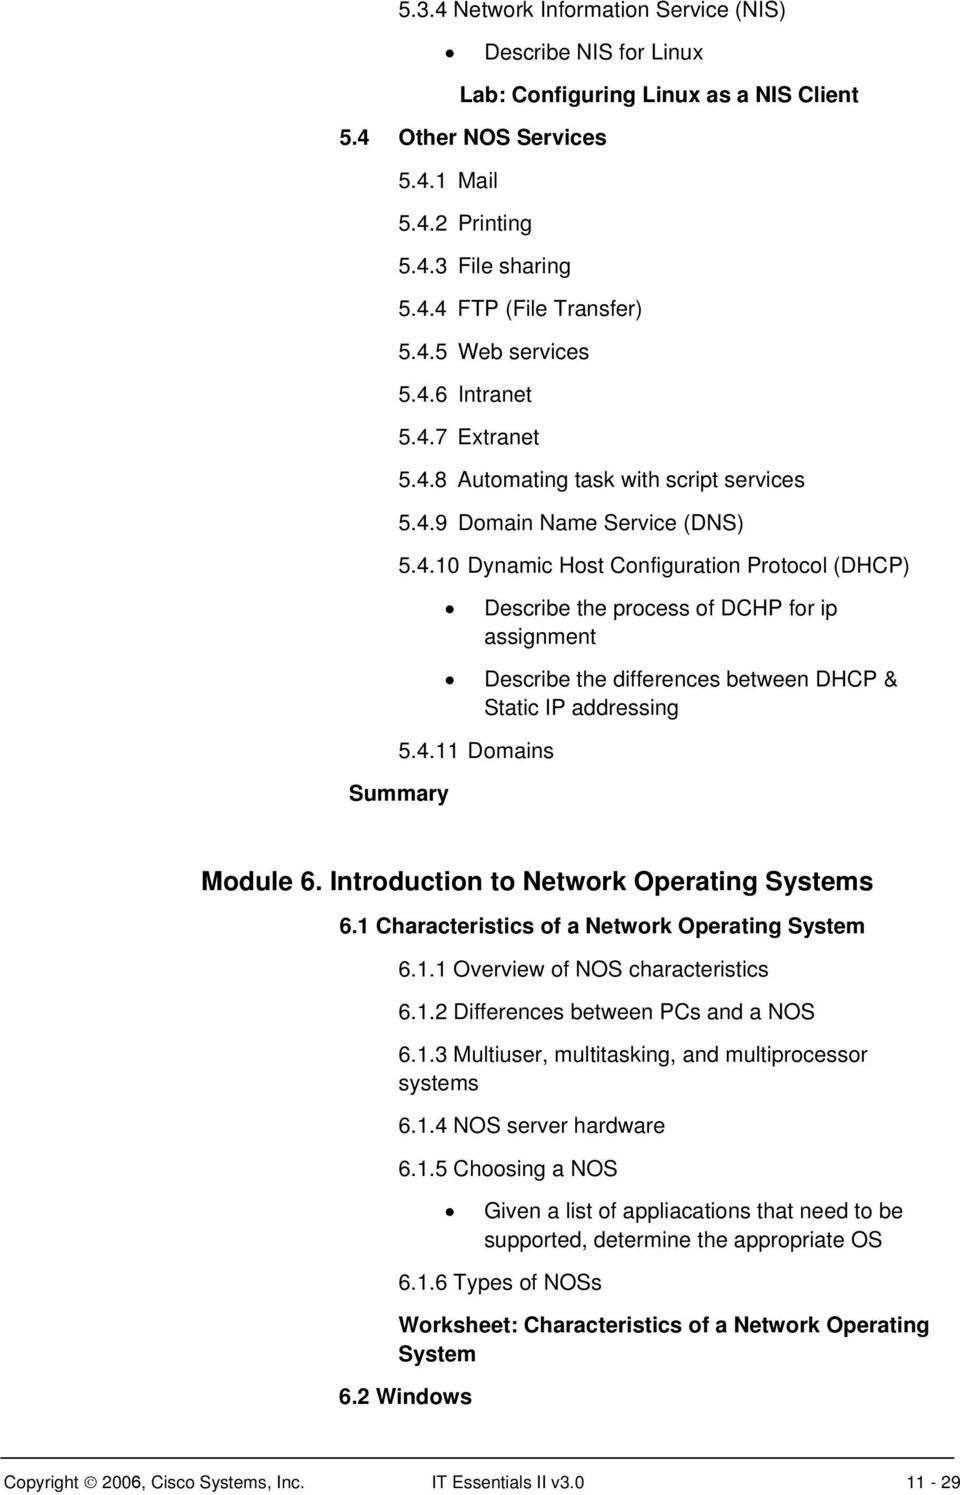 ... IT Essentials II v. 4.11 Domains Summary Module 6. Introduction to  Network Operating Systems 6.1 Characteristics of a Network